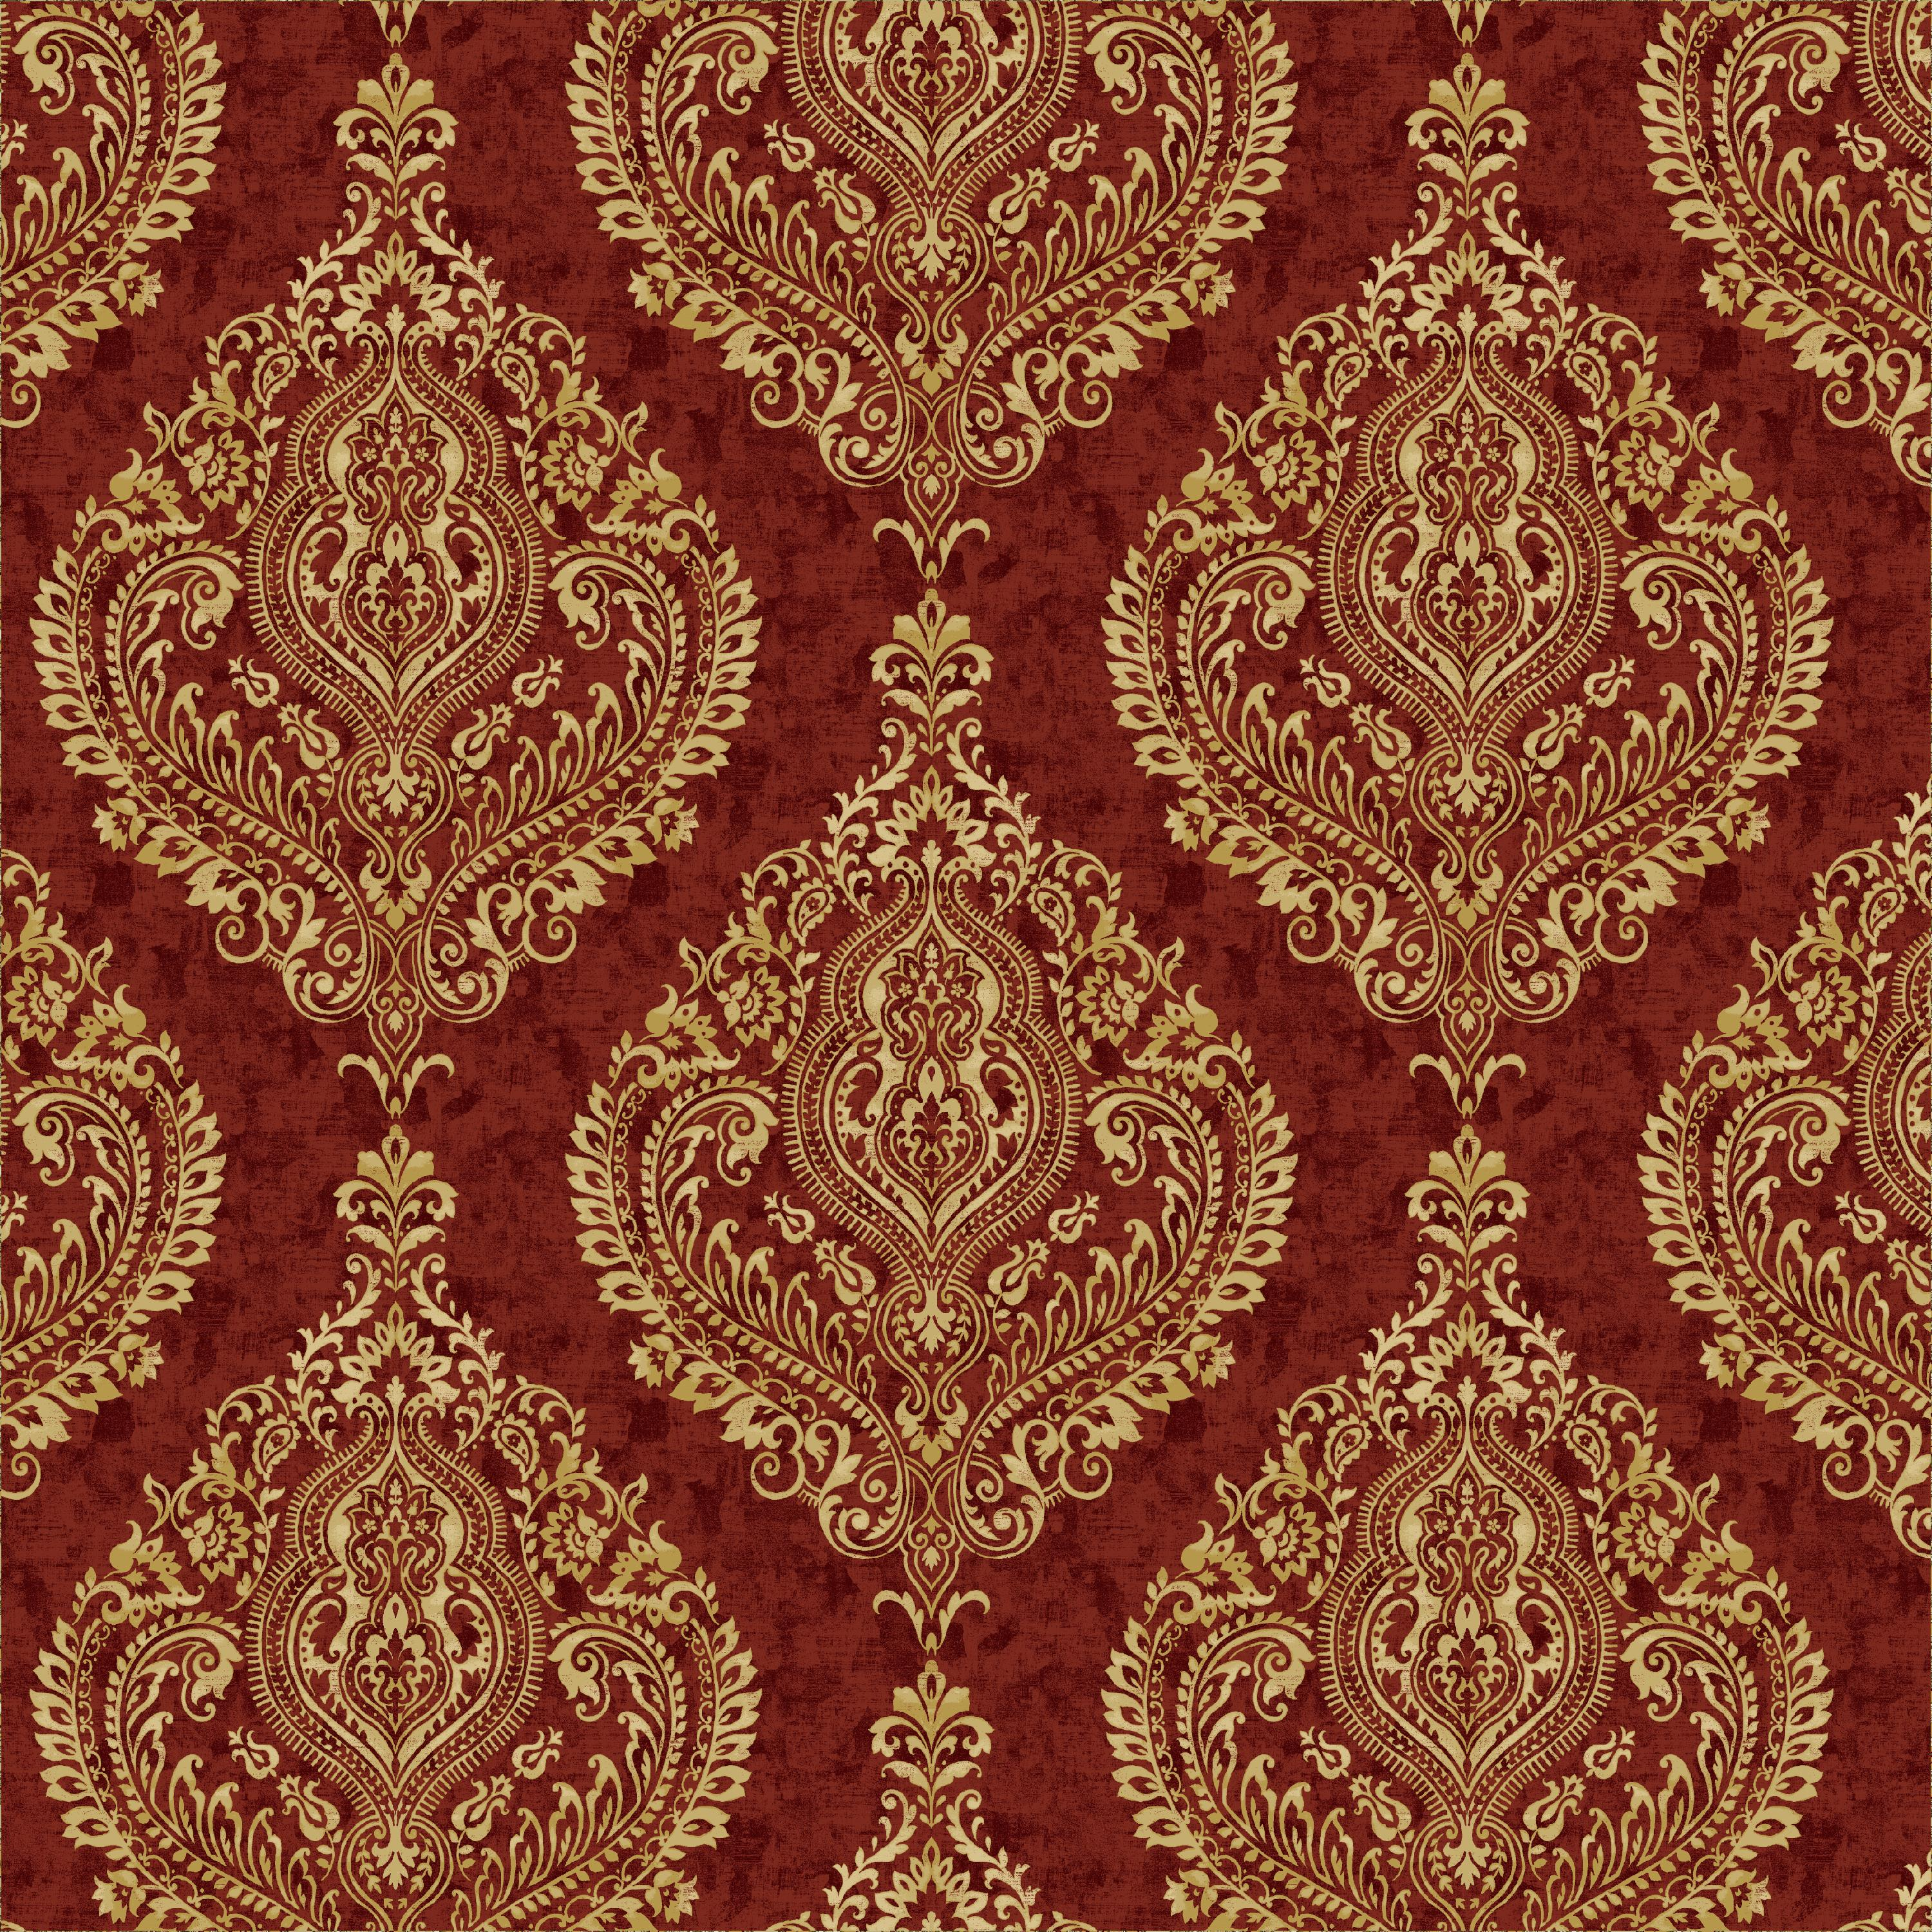 "Waverly Inspirations Cotton Duck 45"" Large Damask Antique Fabric, per Yard"